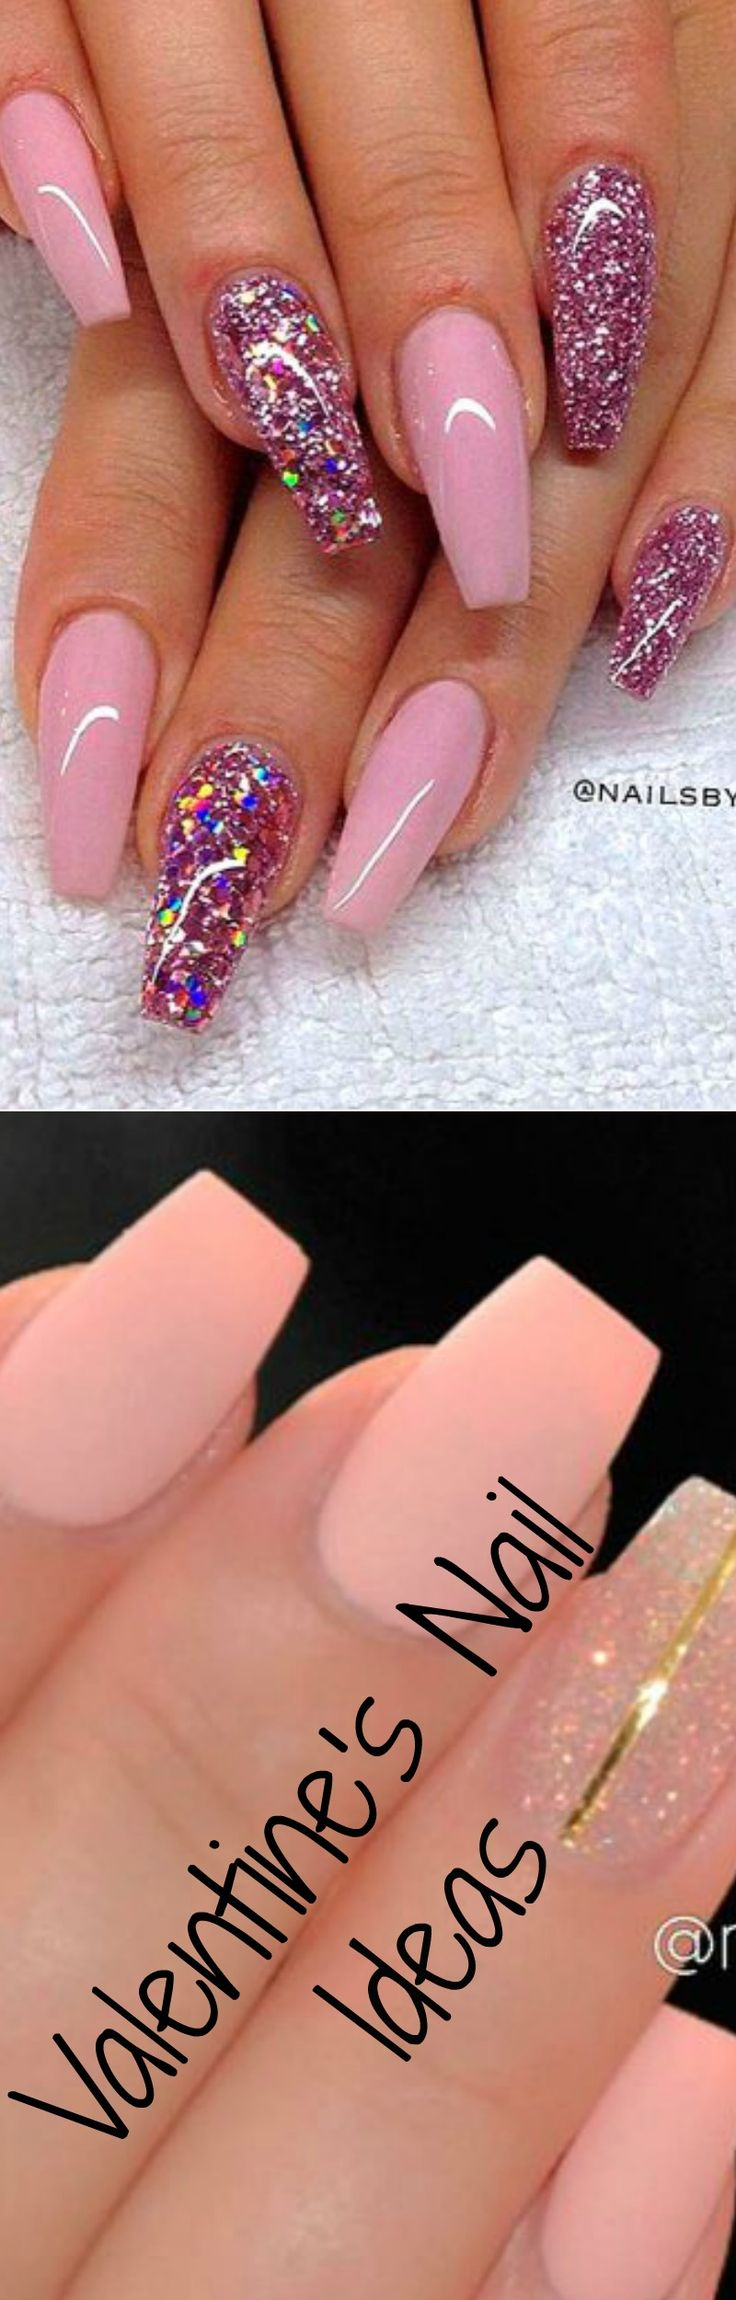 20 best nails images on Pinterest | Nail art, Nail scissors and Nail ...